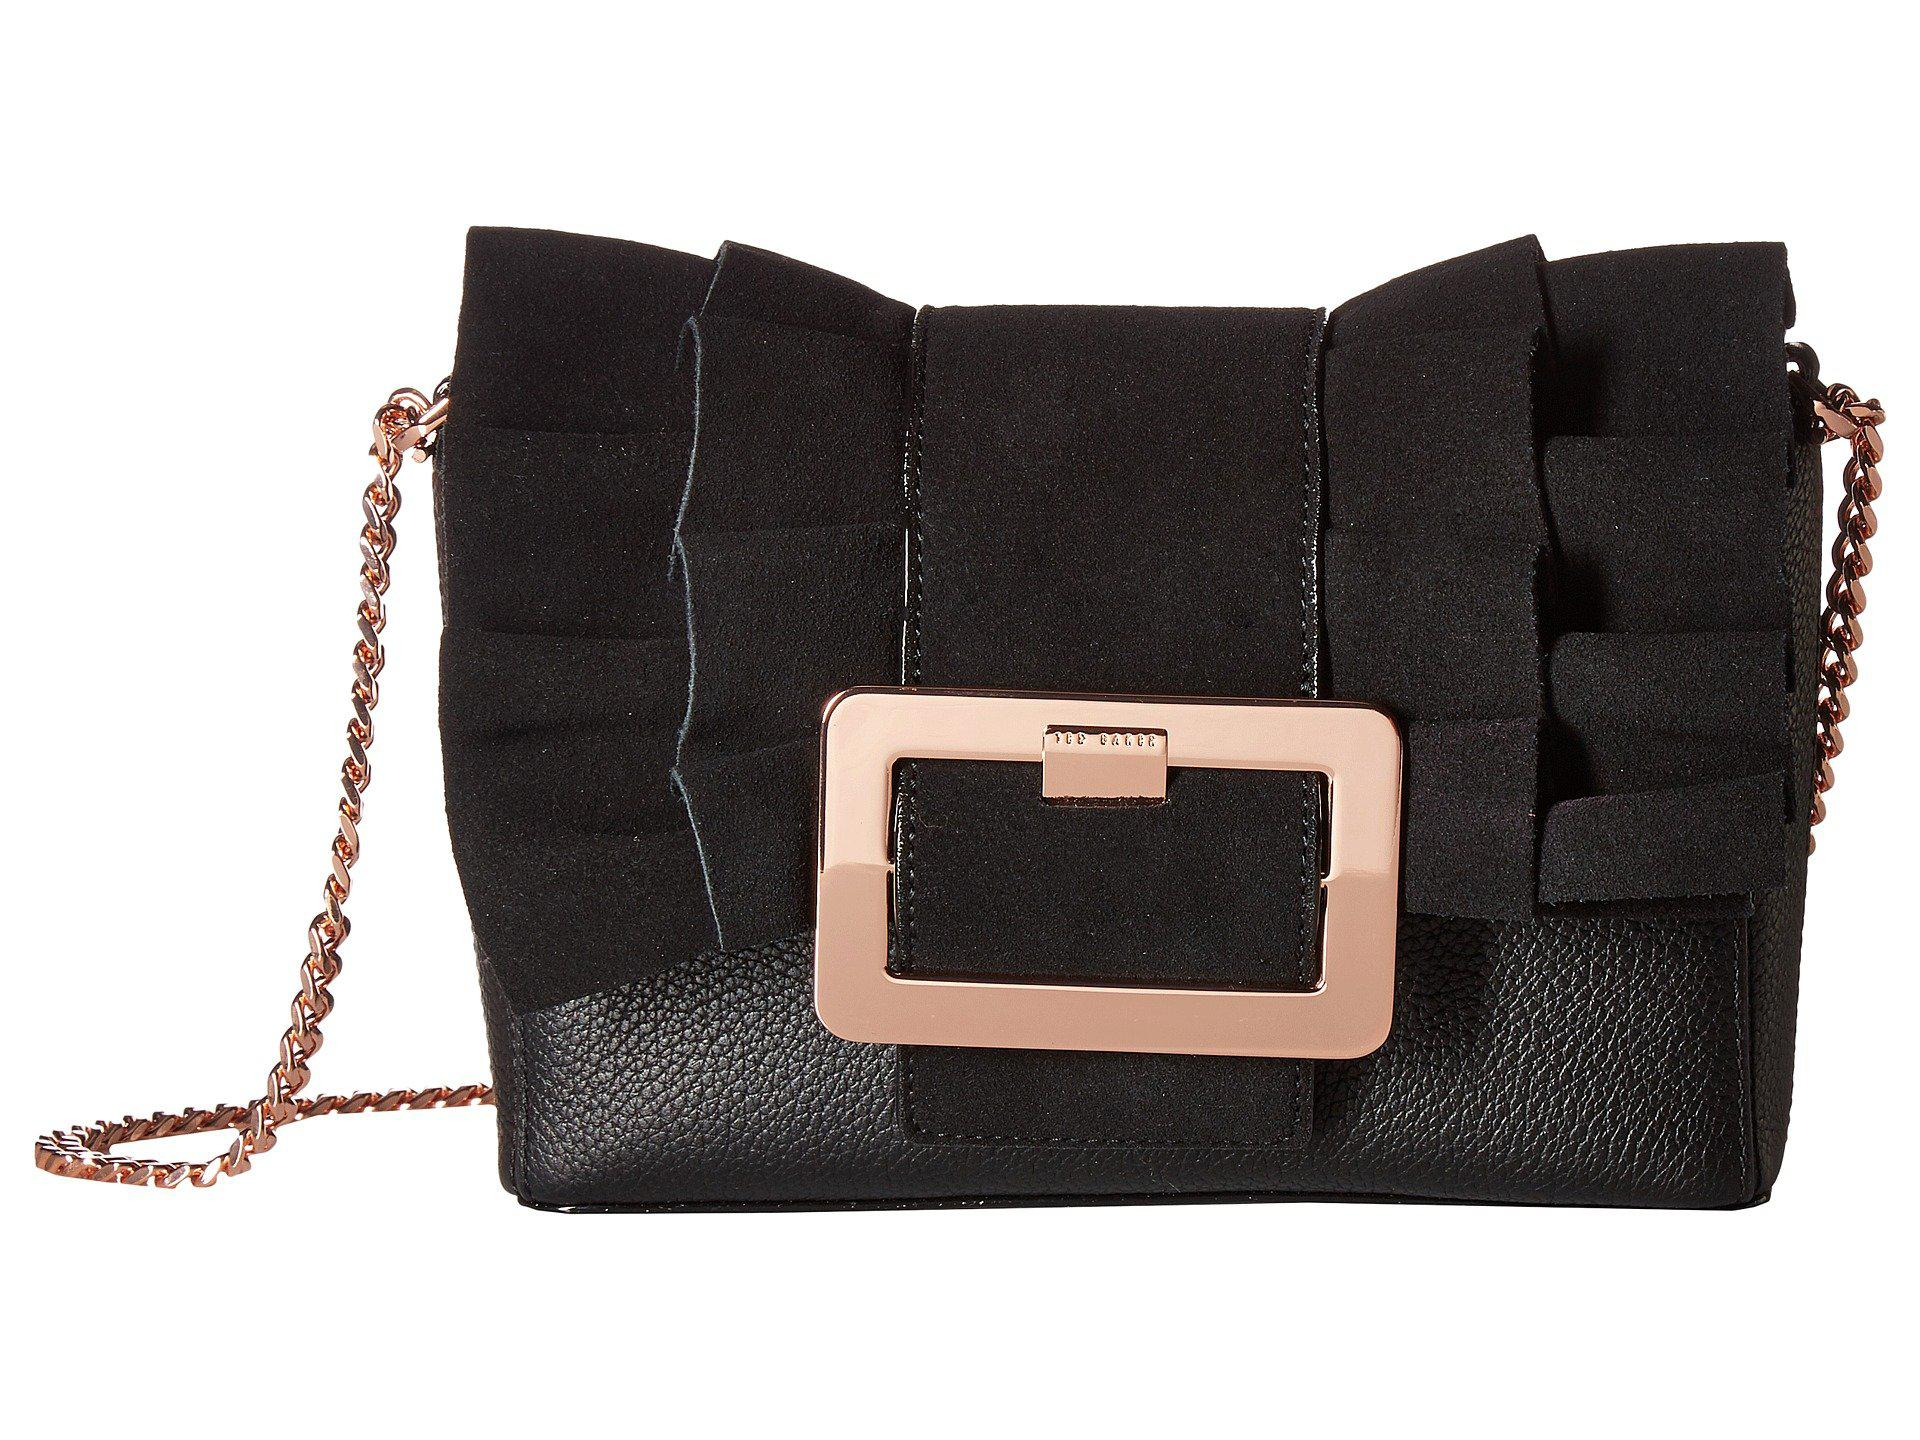 8f760997a4bfb4 Lyst - Ted Baker Frill Buckle Clutch in Black